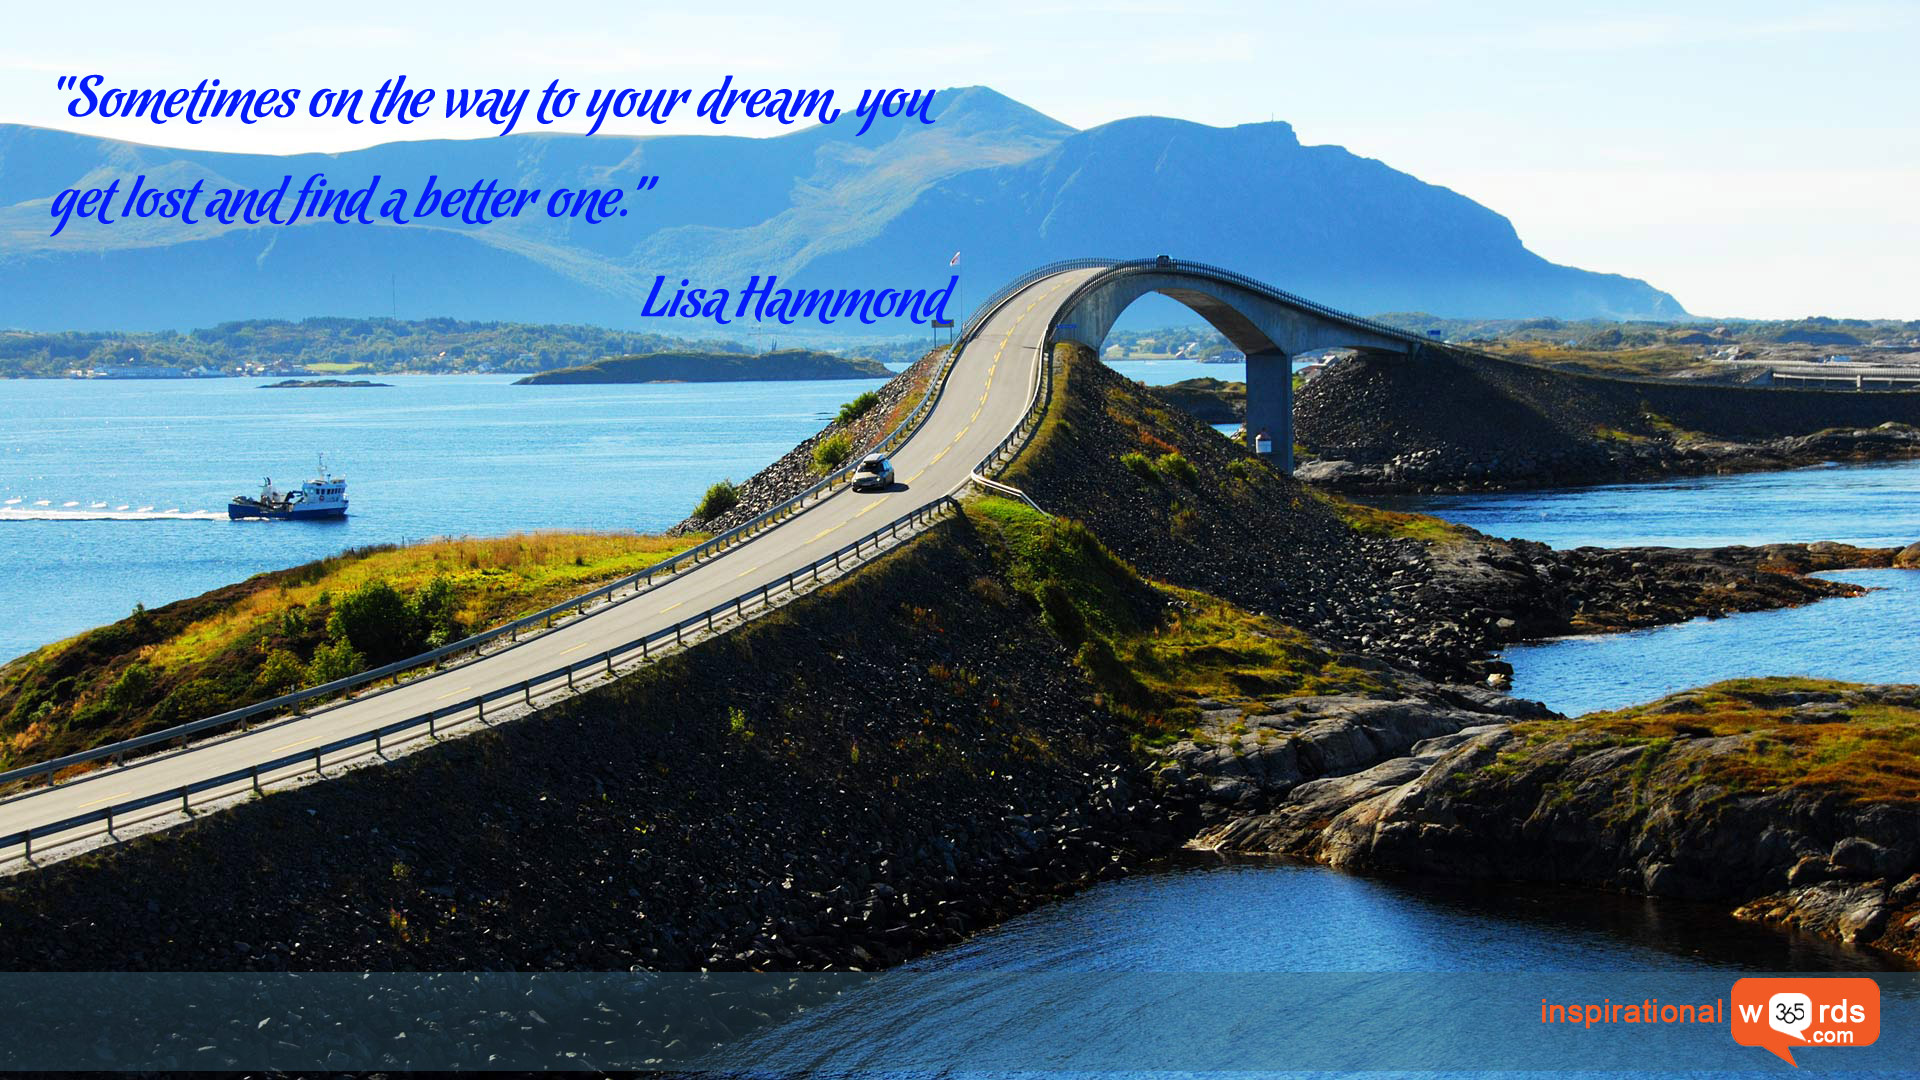 Inspirational Wallpaper Quote by Lisa Hammond